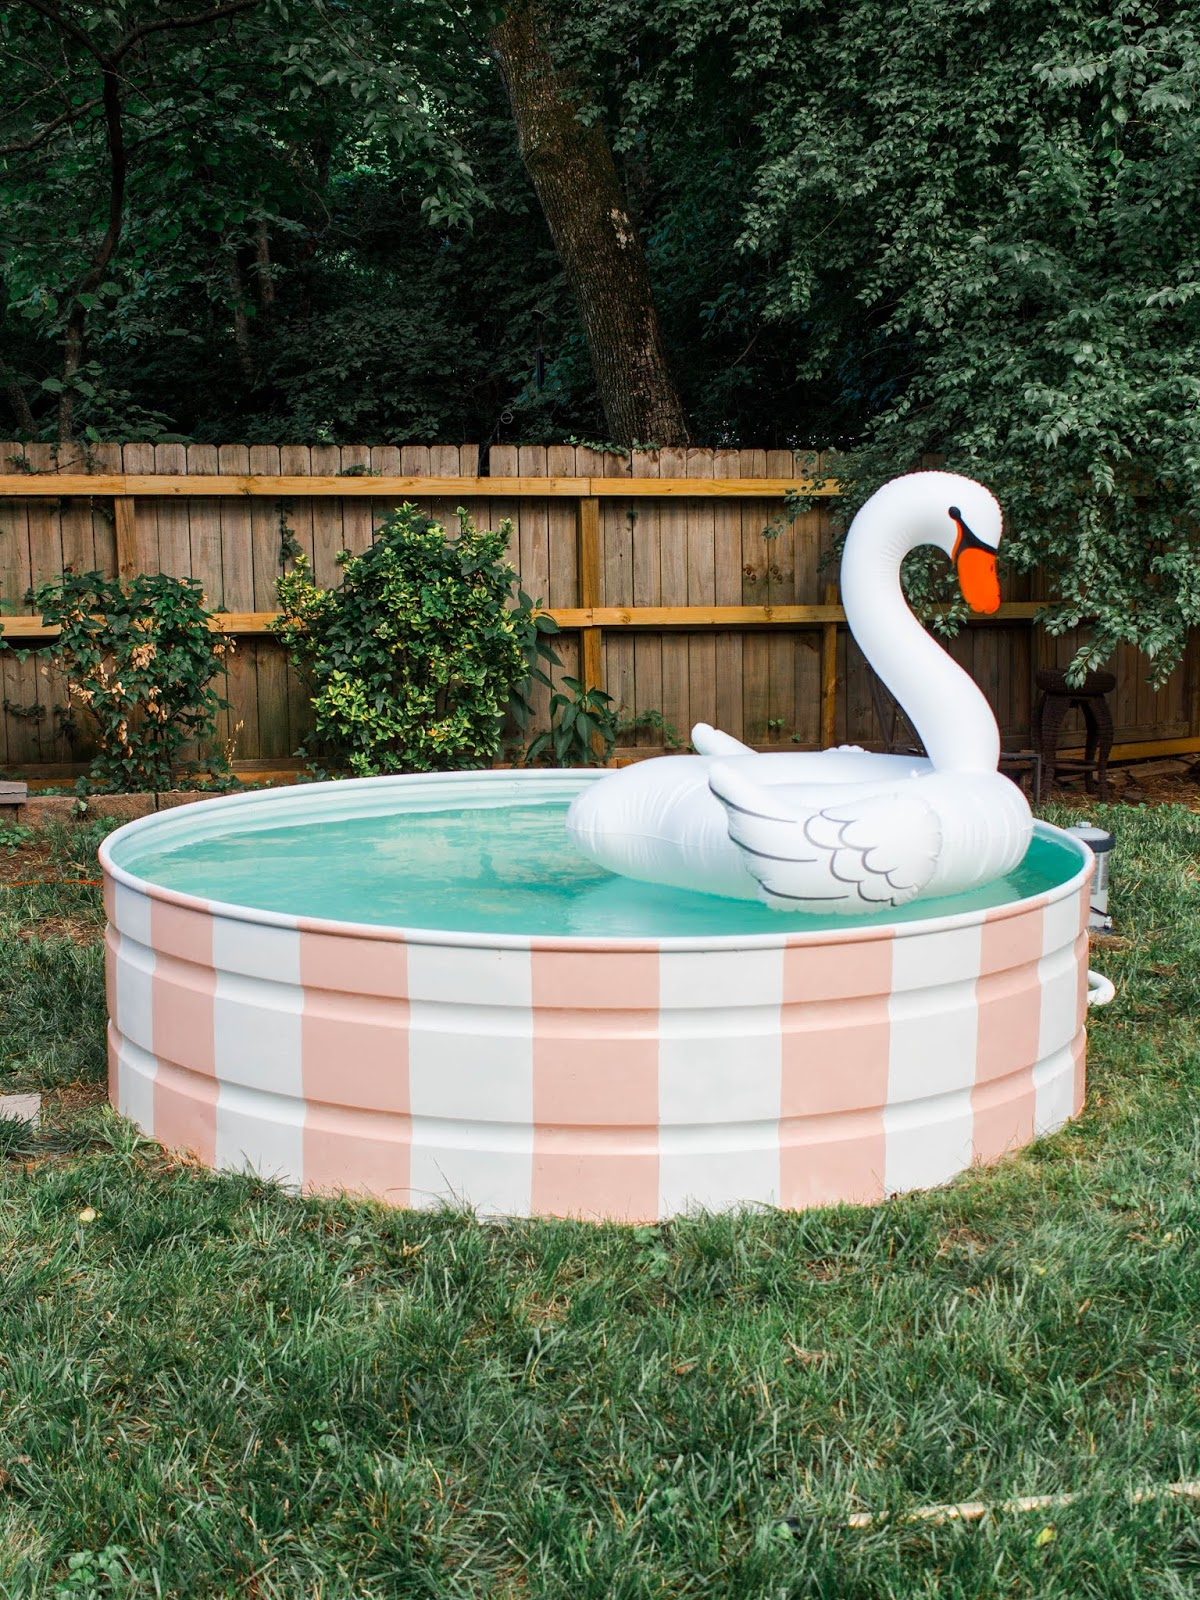 Download Horse Trough Pool Images